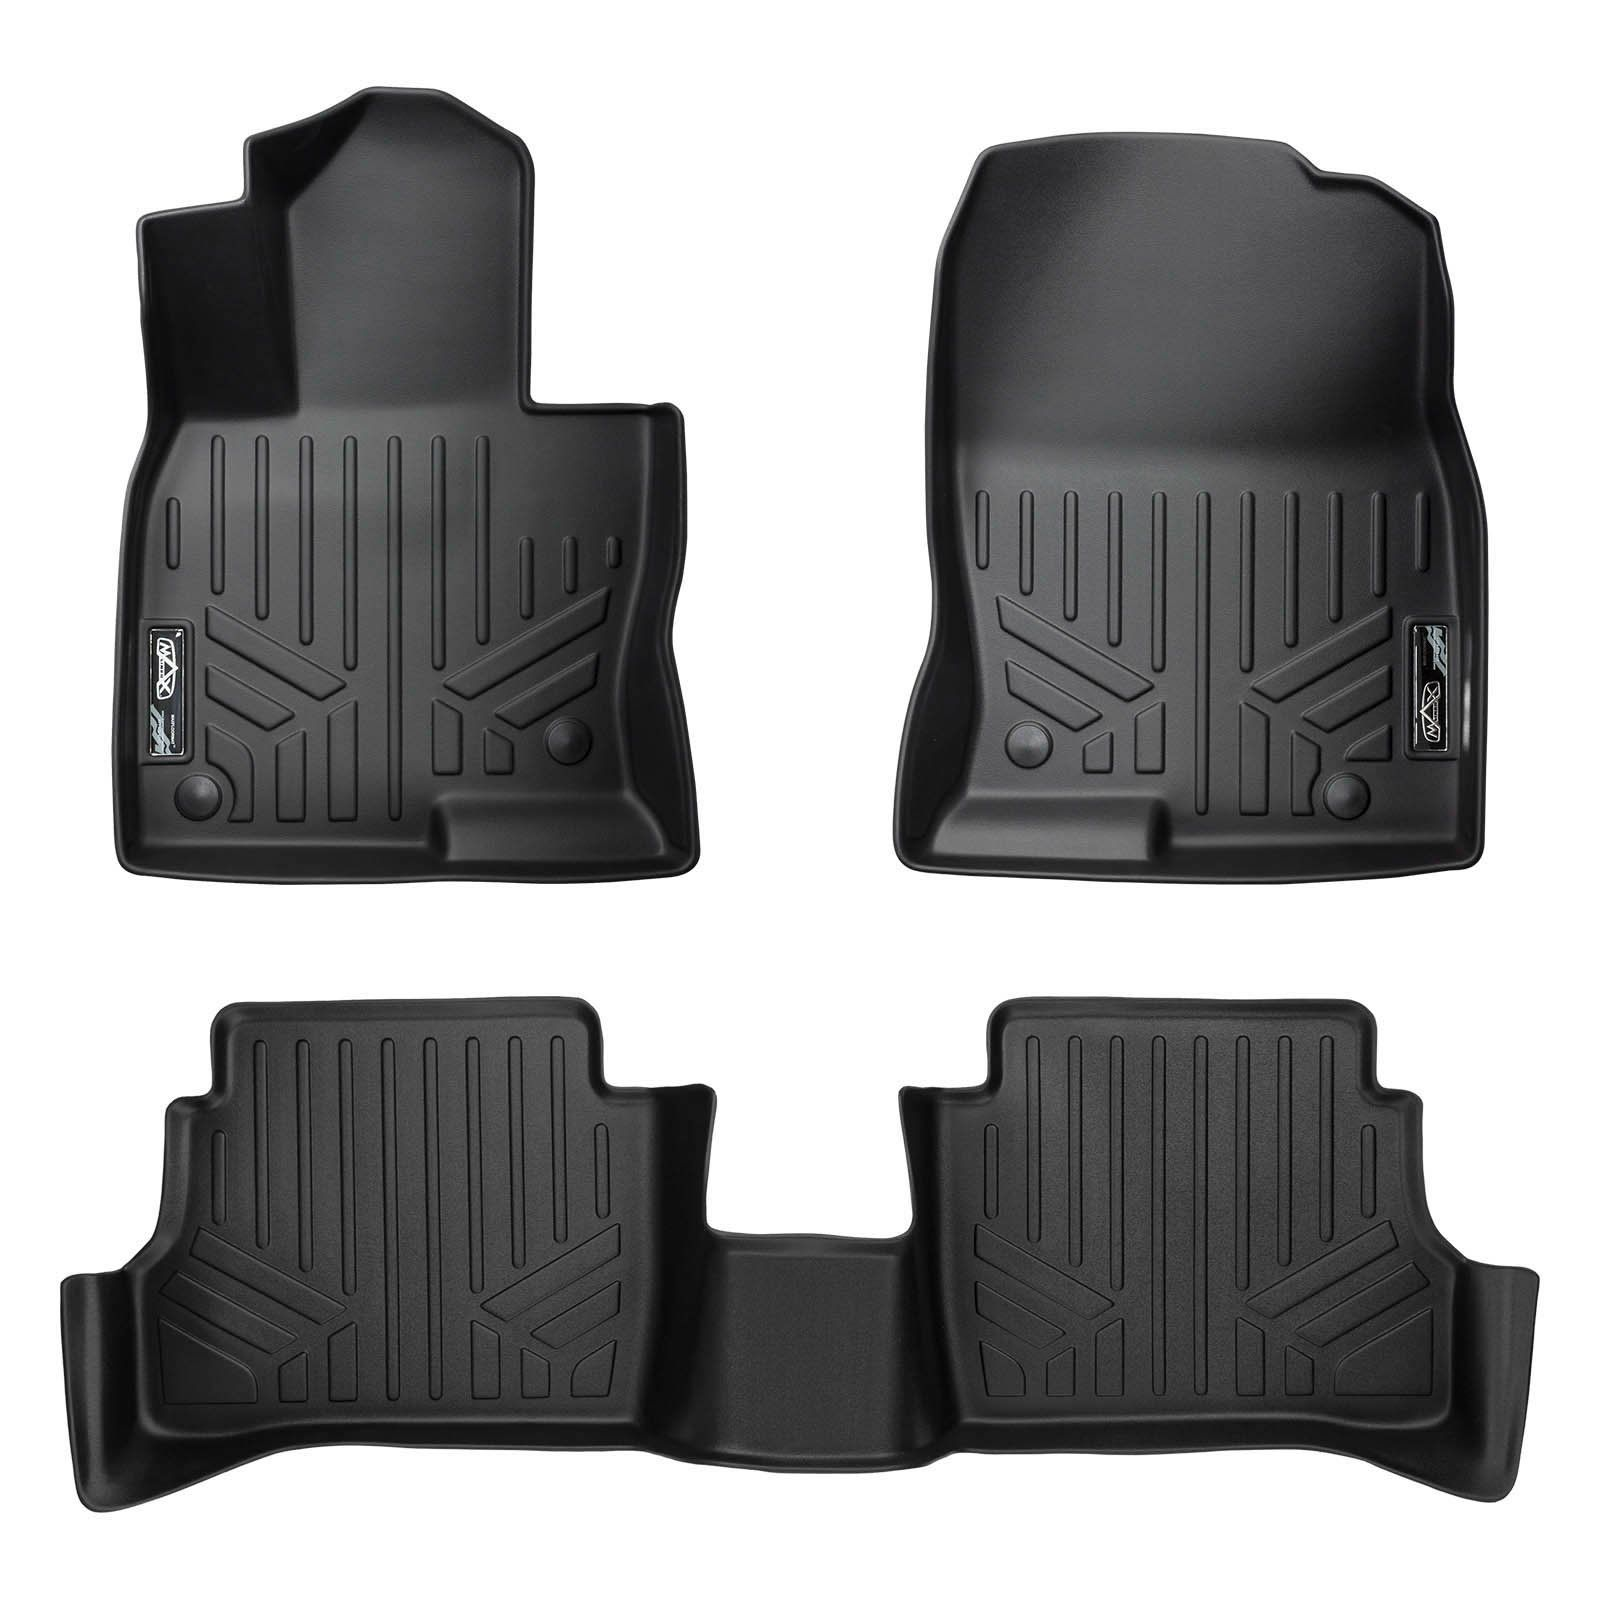 Maxliner Floor Mats 2 Row Liner Set Black For 2017 2018 Mazda Cx 5 Click On The Image For Additional Details This Is An Affilia Floor Mats Flooring Mazda